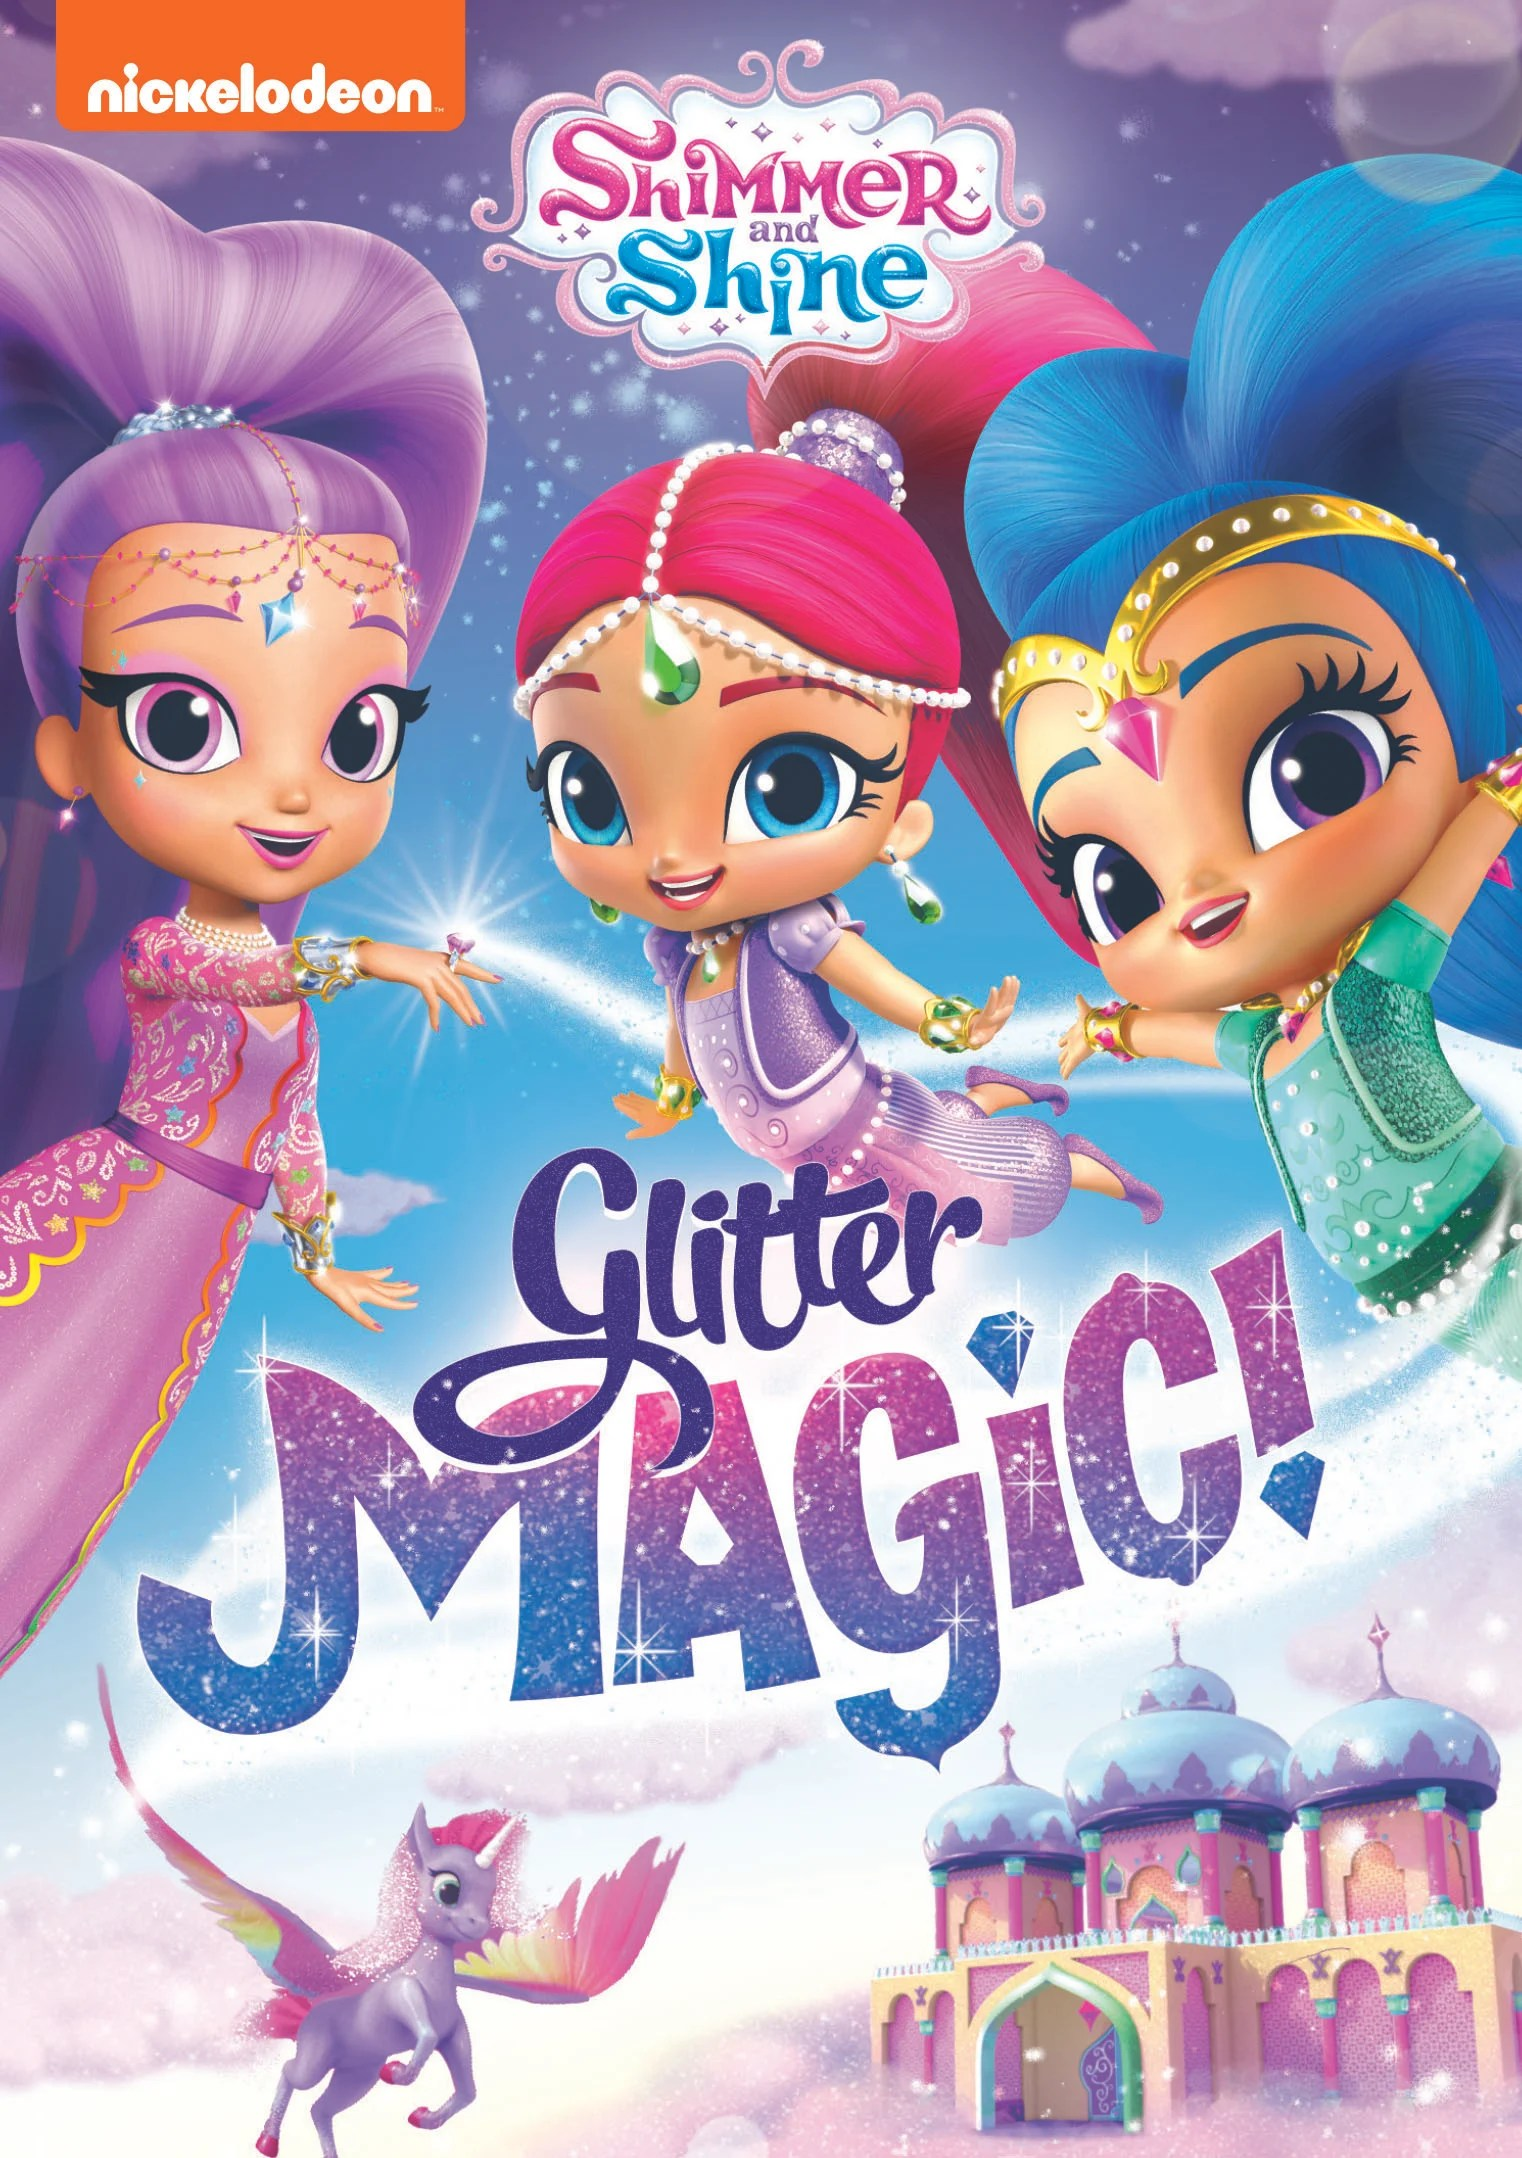 There's plenty of glitter to go around in the new sparkling DVD collection Shimmer and Shine: Glitter Magic! Arriving on August 4, 2020, preschoolers can join Shimmer and Shine for fun magic-filled adventures as they meet the Glitter Genie, learn Glitter Magic, and more!